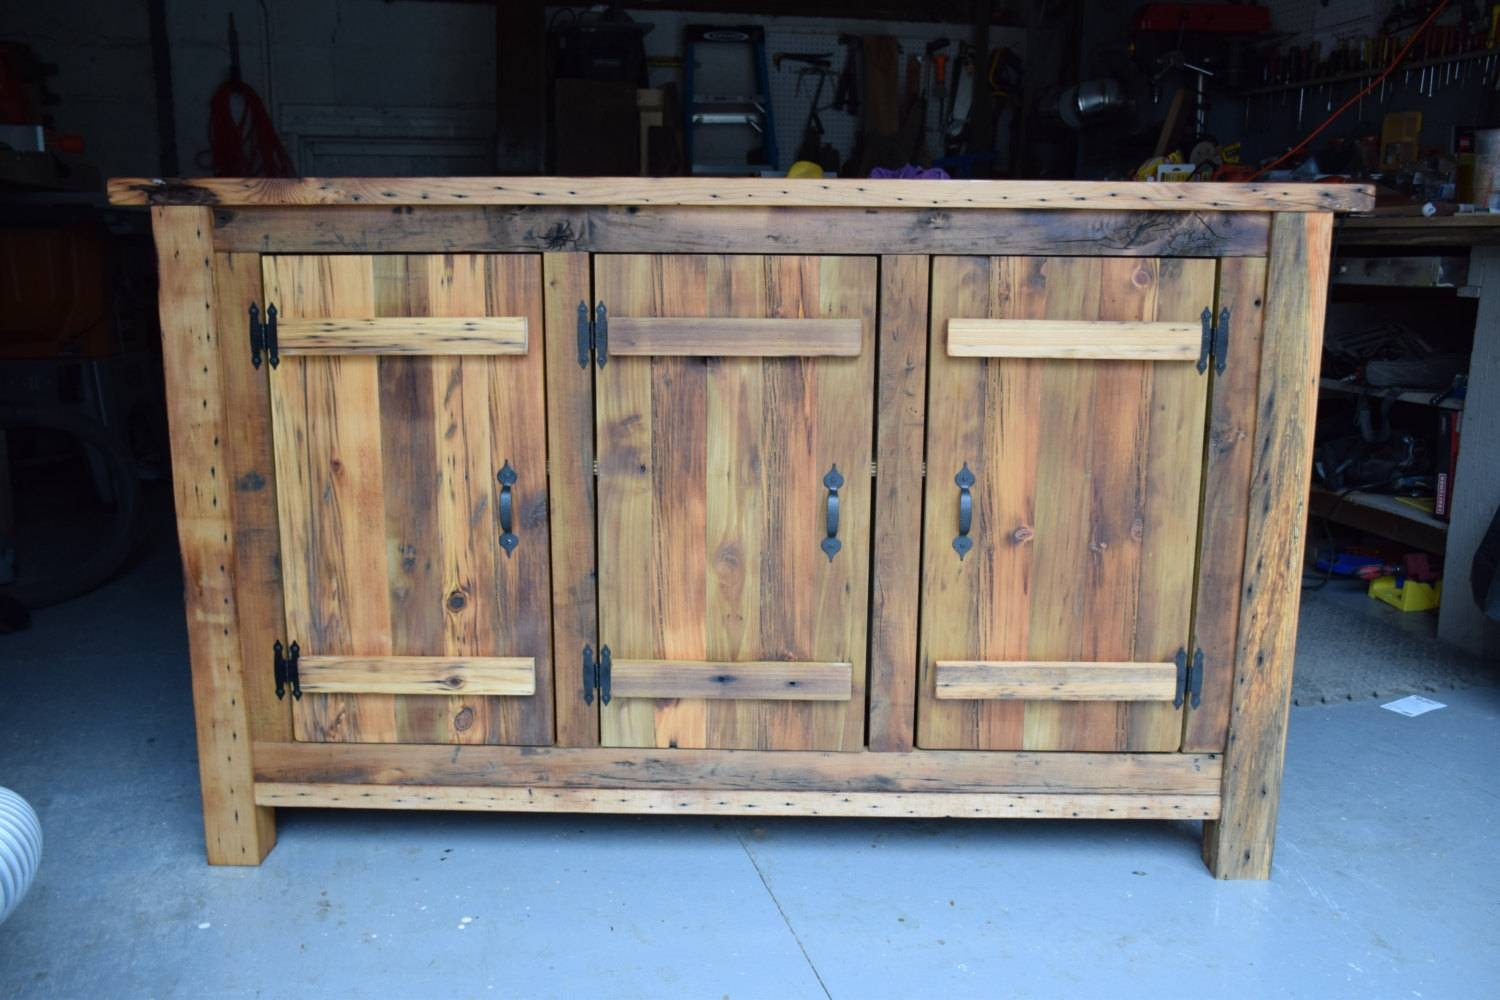 Reclaimed Wood Rustic Buffet Farmhouse Buffet Table Entryway intended for Reclaimed Wood Sideboards (Image 9 of 15)